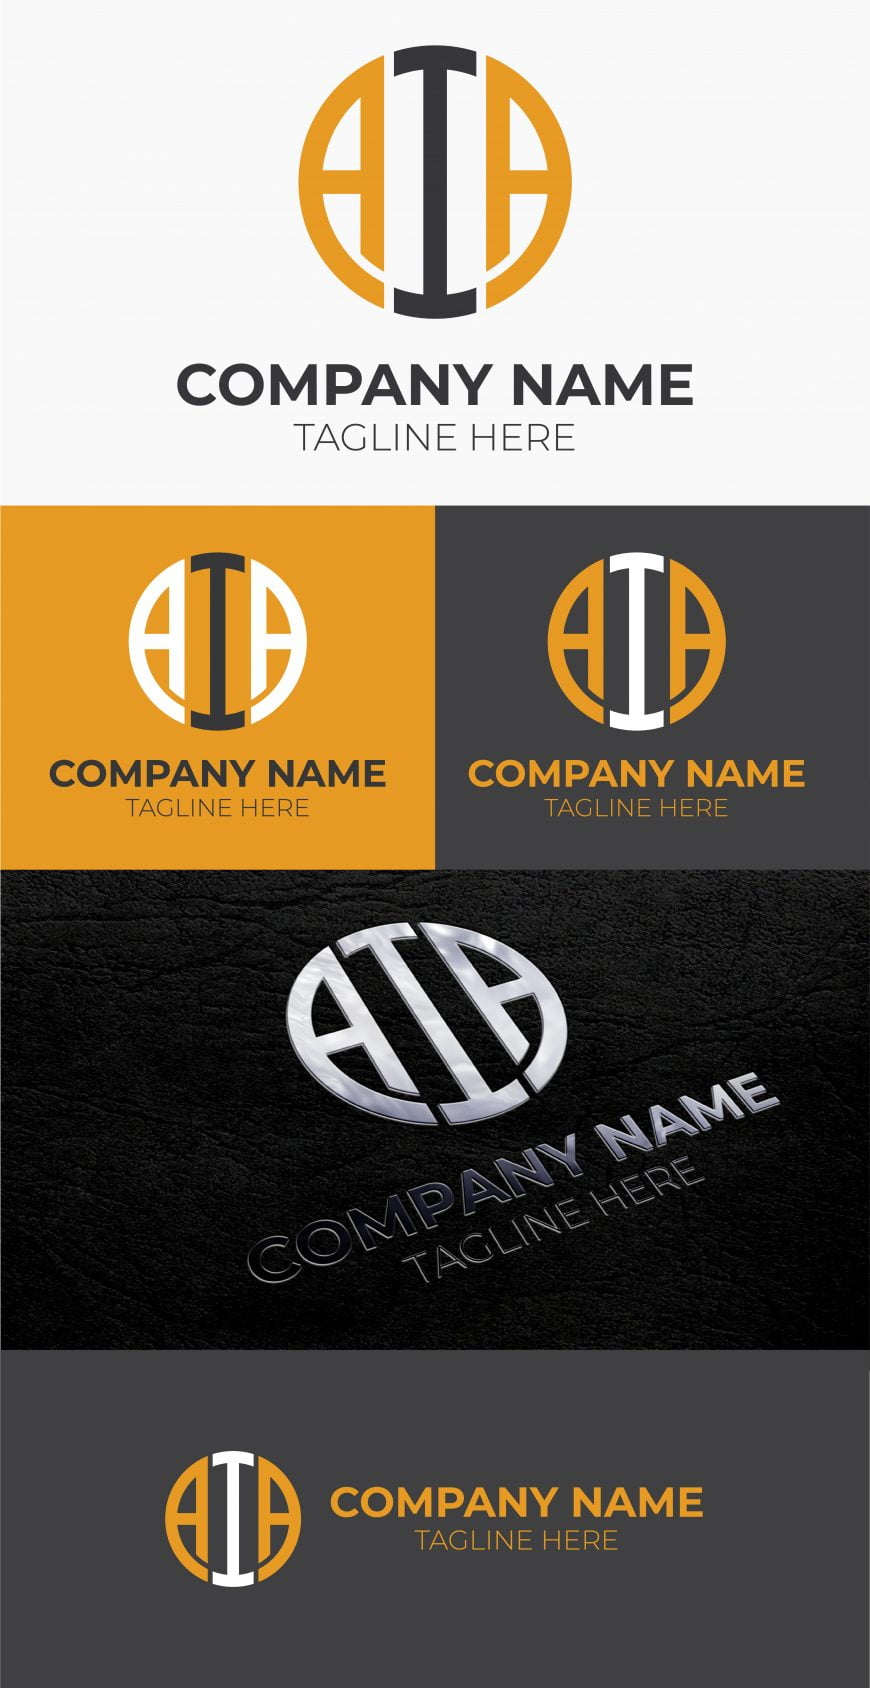 AIA-FREE-LOGO-DESIGN-TEMPLATE-scaled